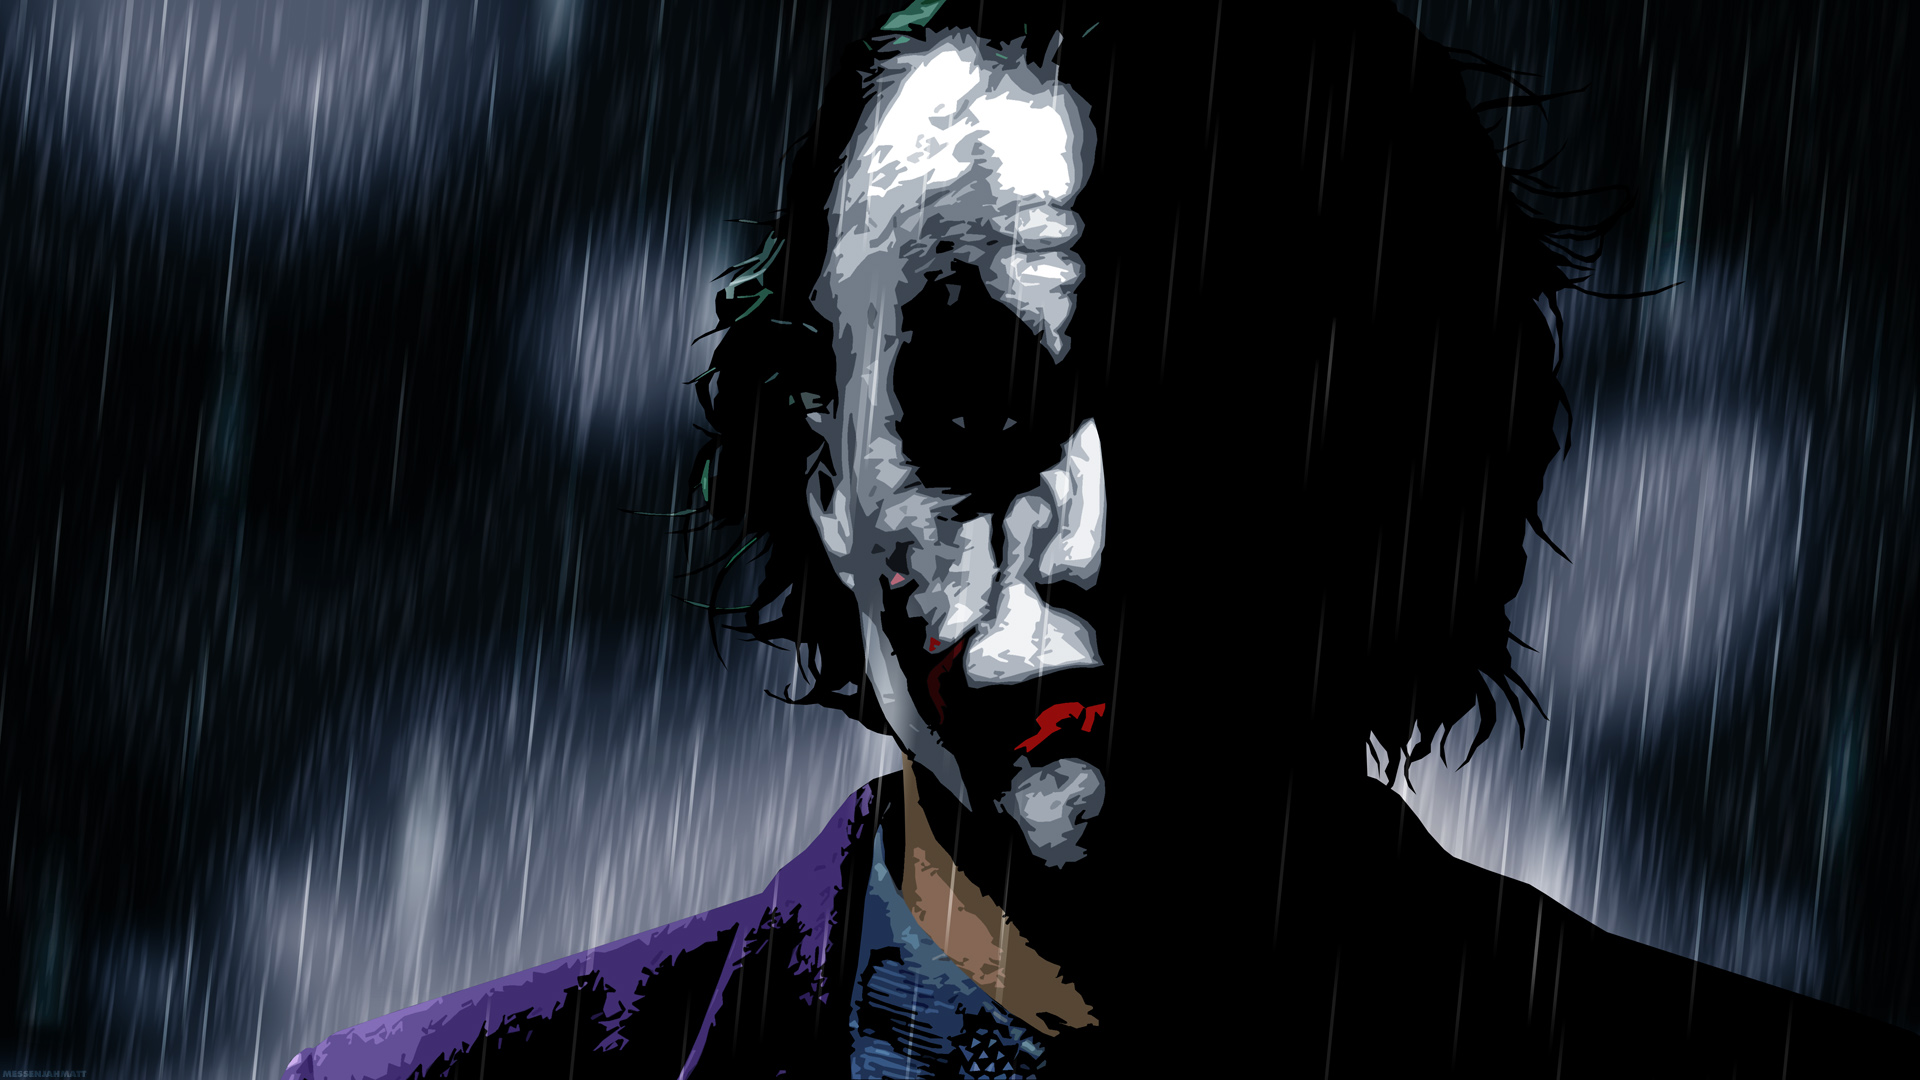 Joker Wallpapers High Quality Download Free